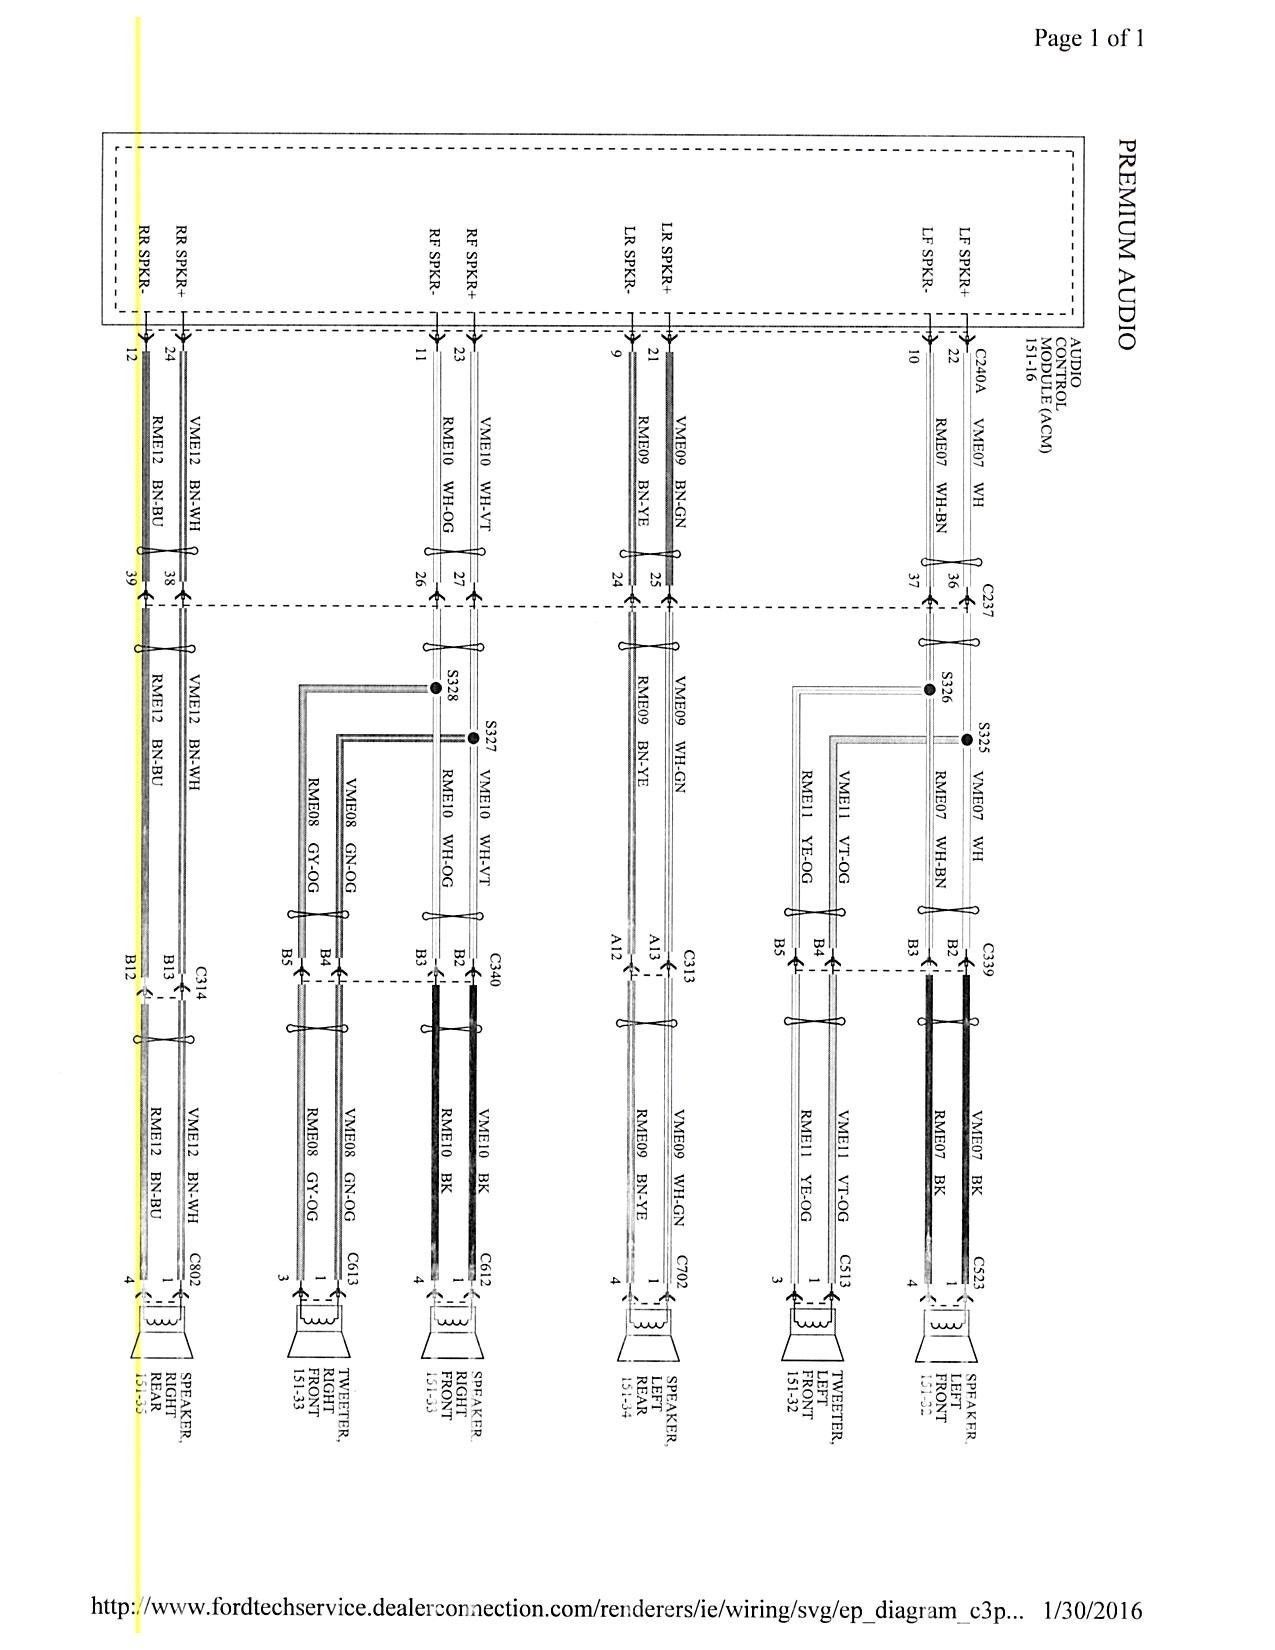 Unique Wiring Diagram Car Radio Pioneer #diagramsample #